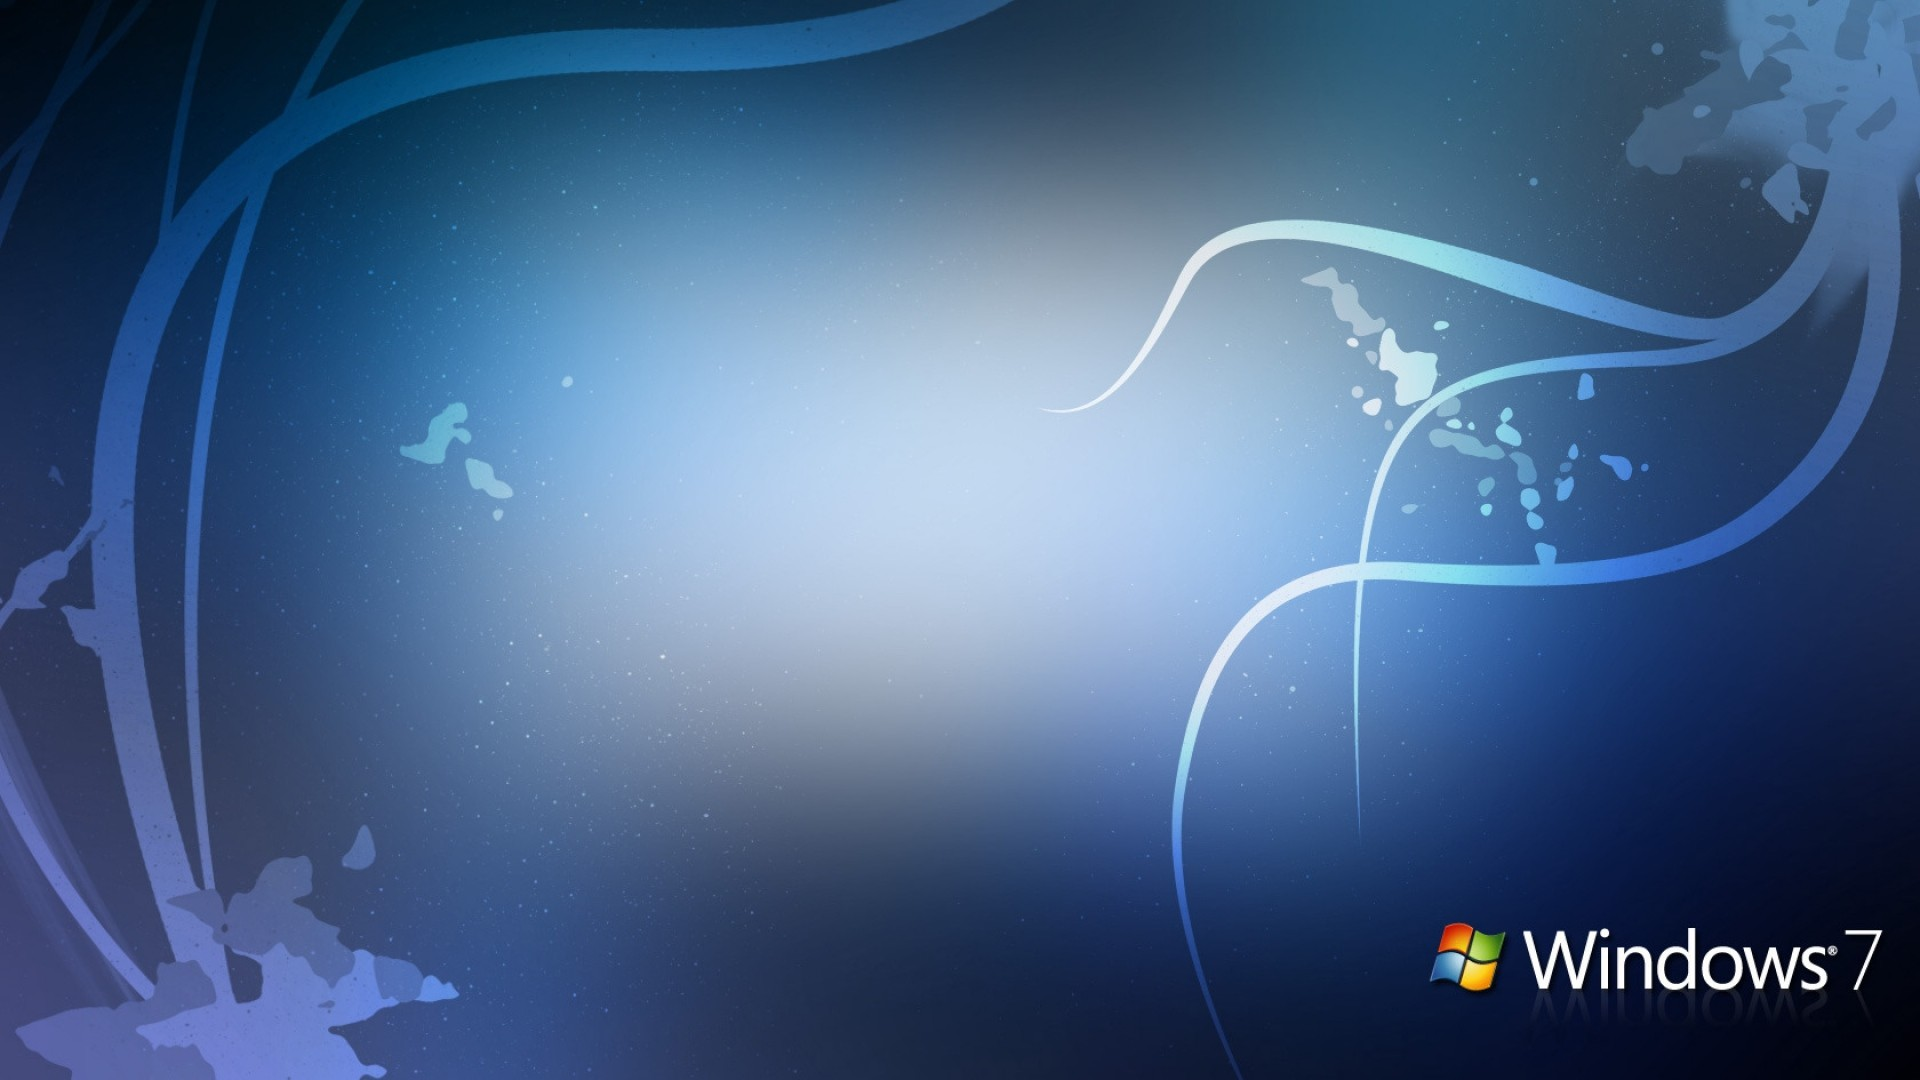 Animated Wallpapers for Windows